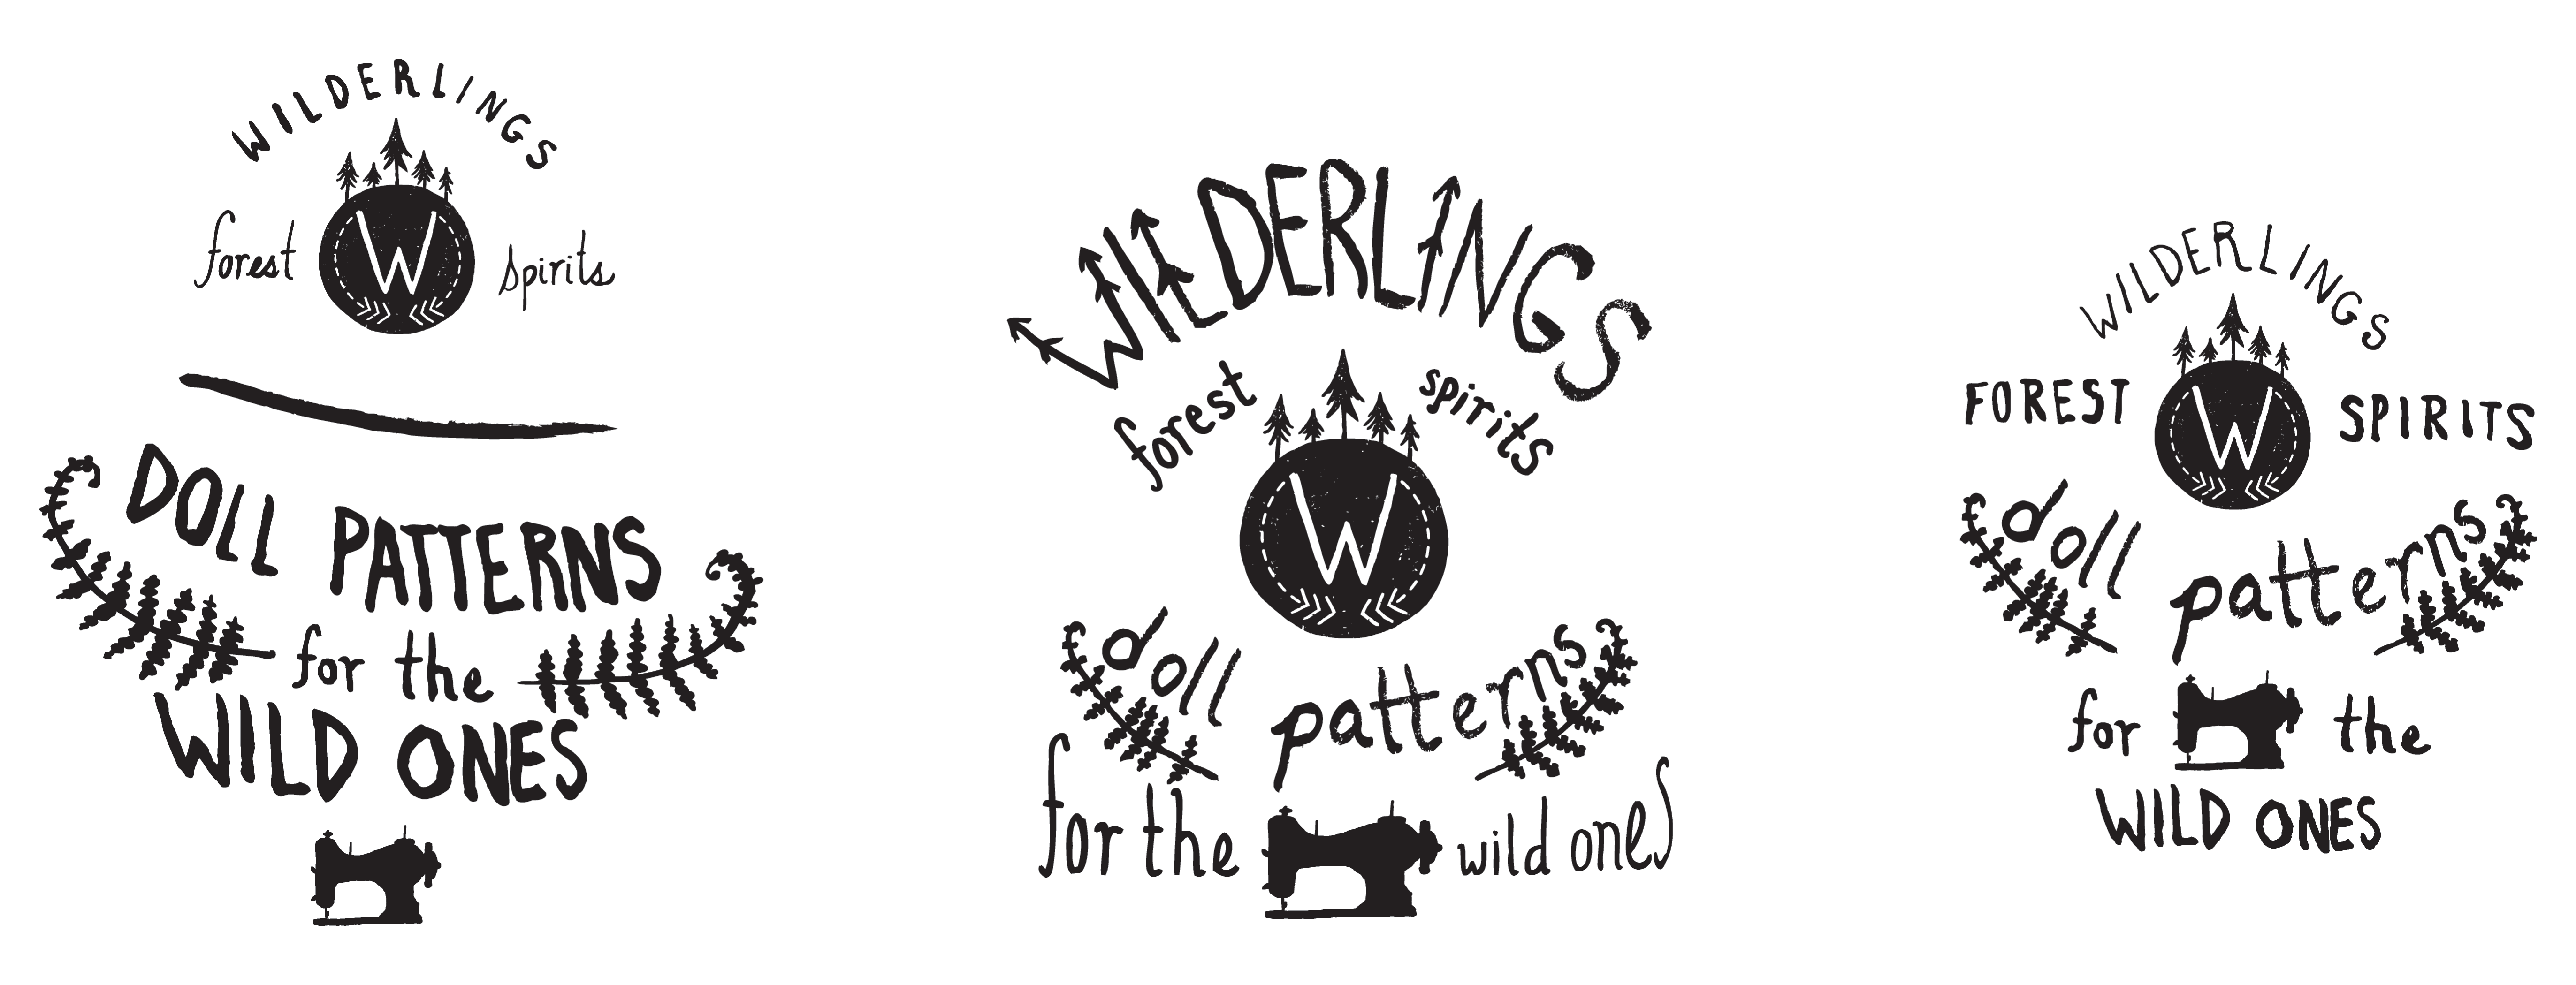 Wilderlings: dolls for the wild ones - image 3 - student project